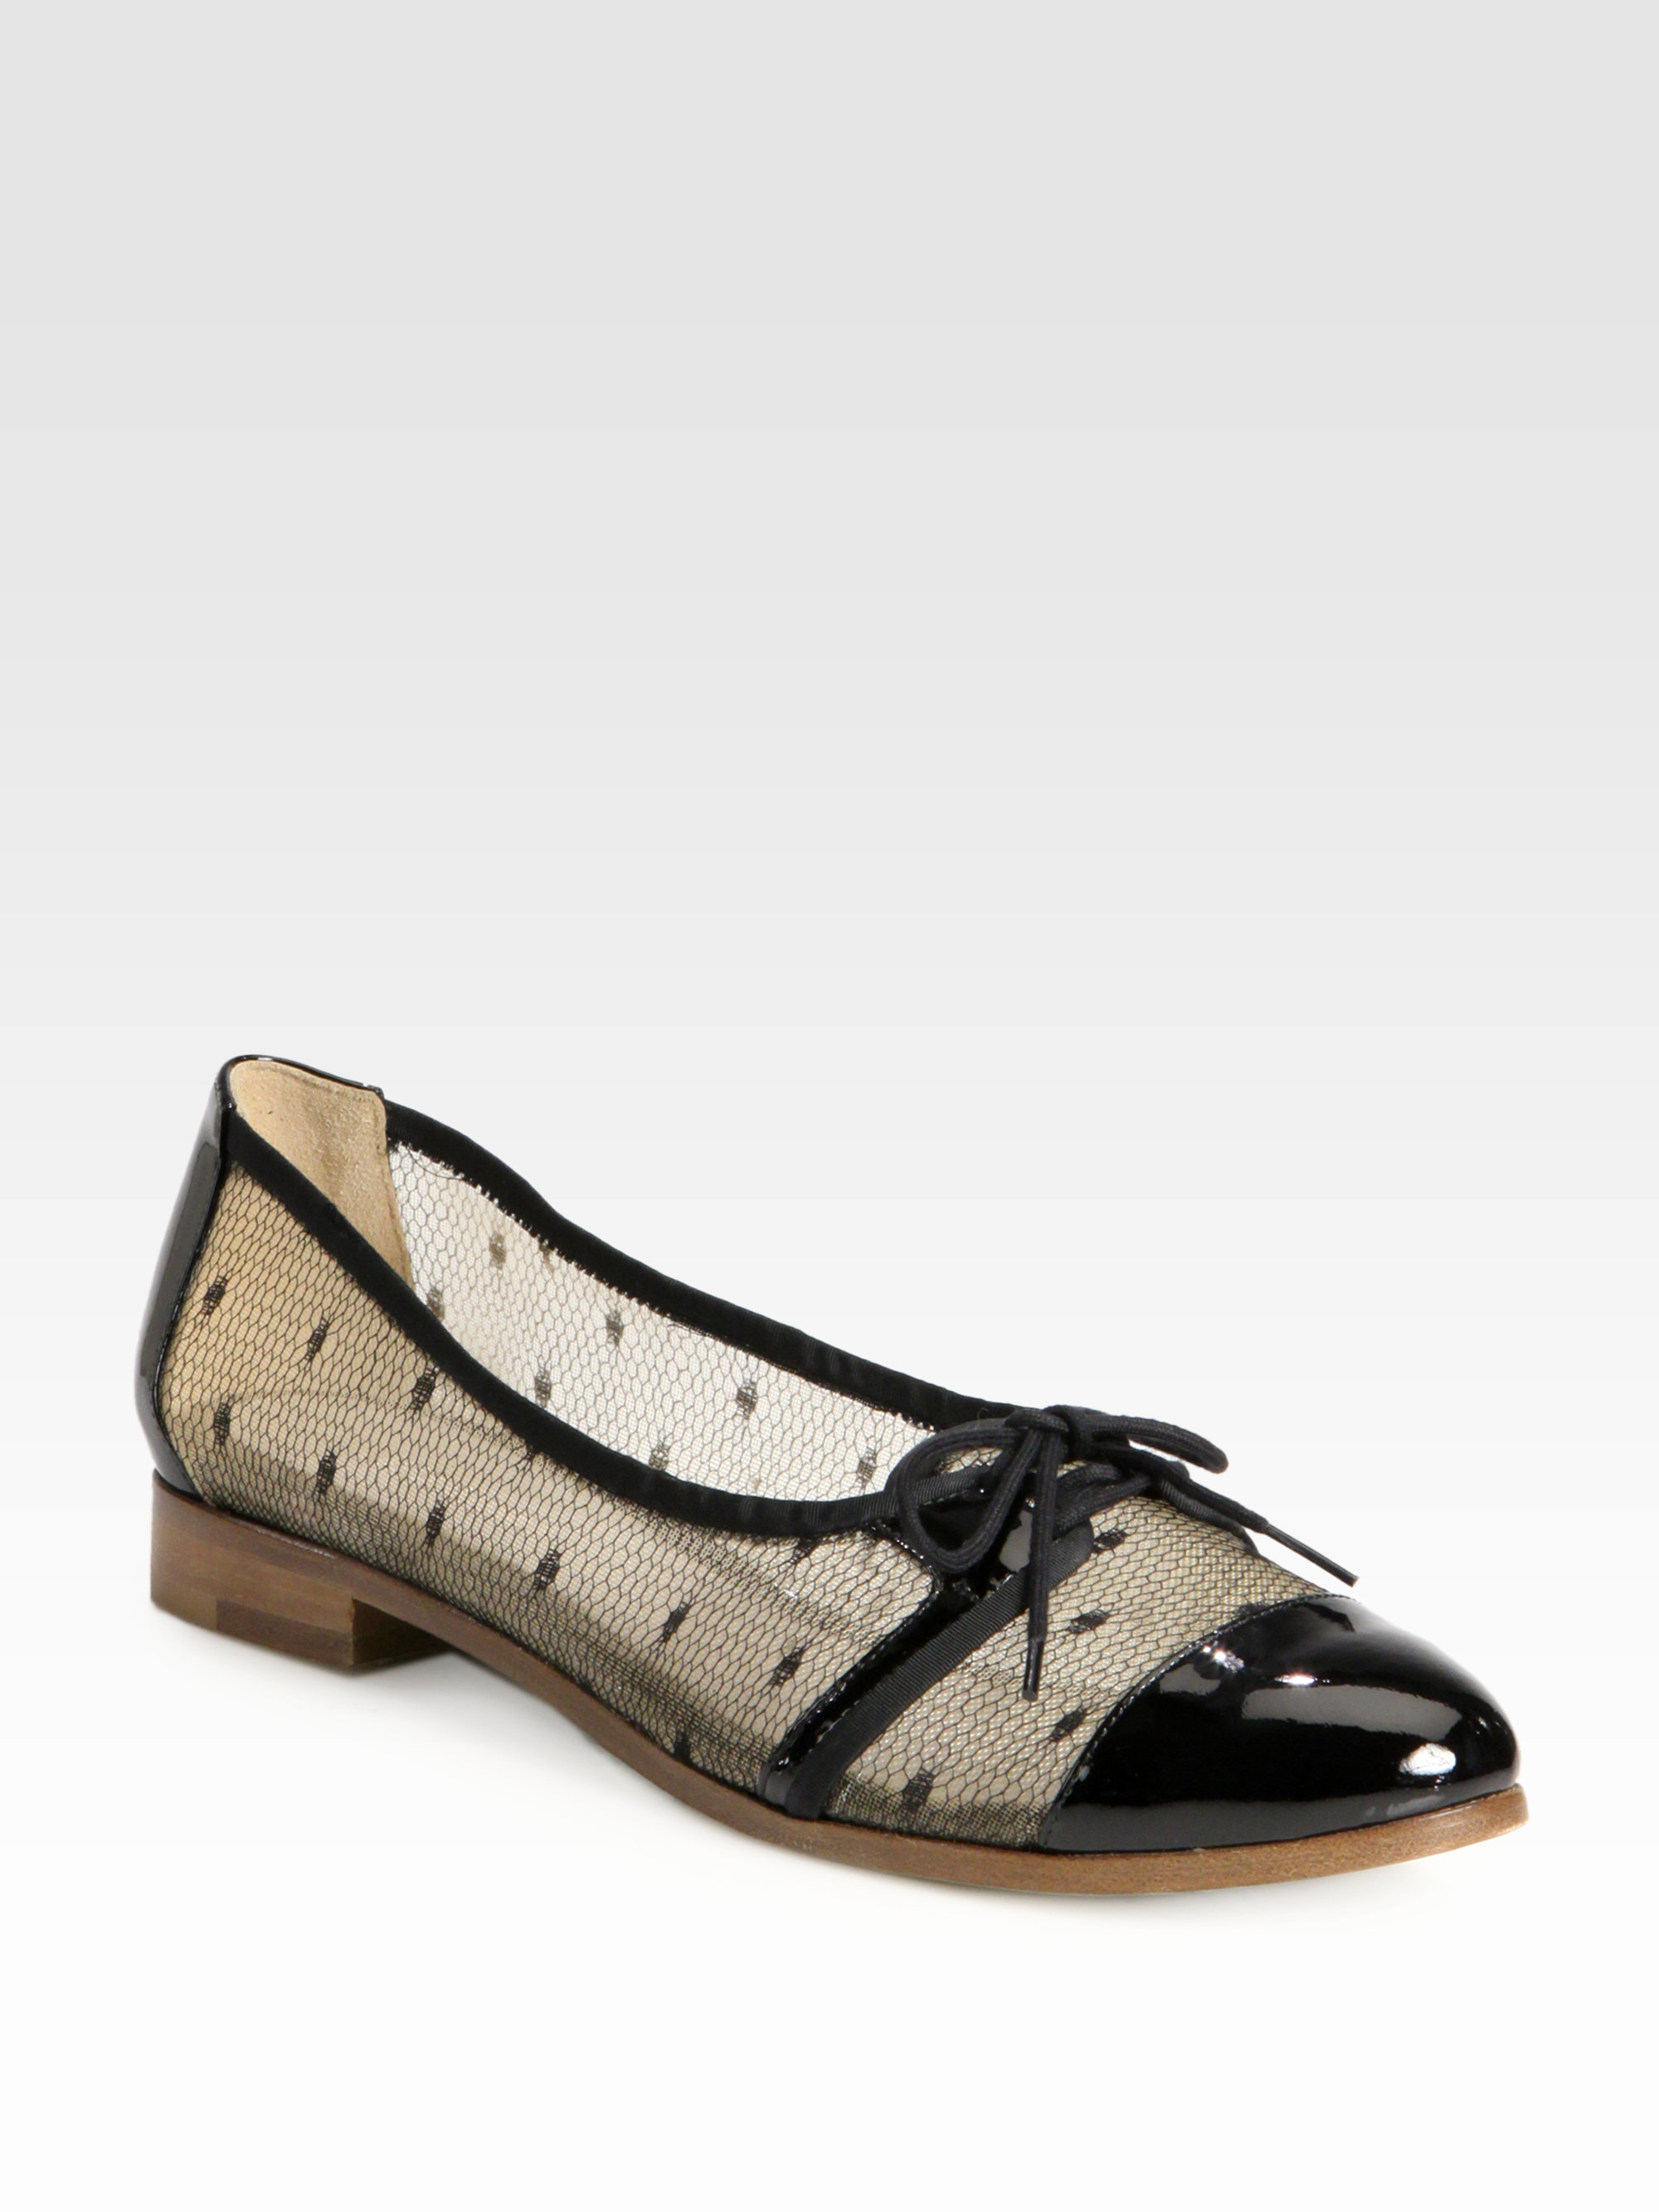 free shipping get to buy Jason Wu Patent Leather Round-Toe Oxfords discount codes shopping online cheap 2015 new buy cheap largest supplier bYWET5D